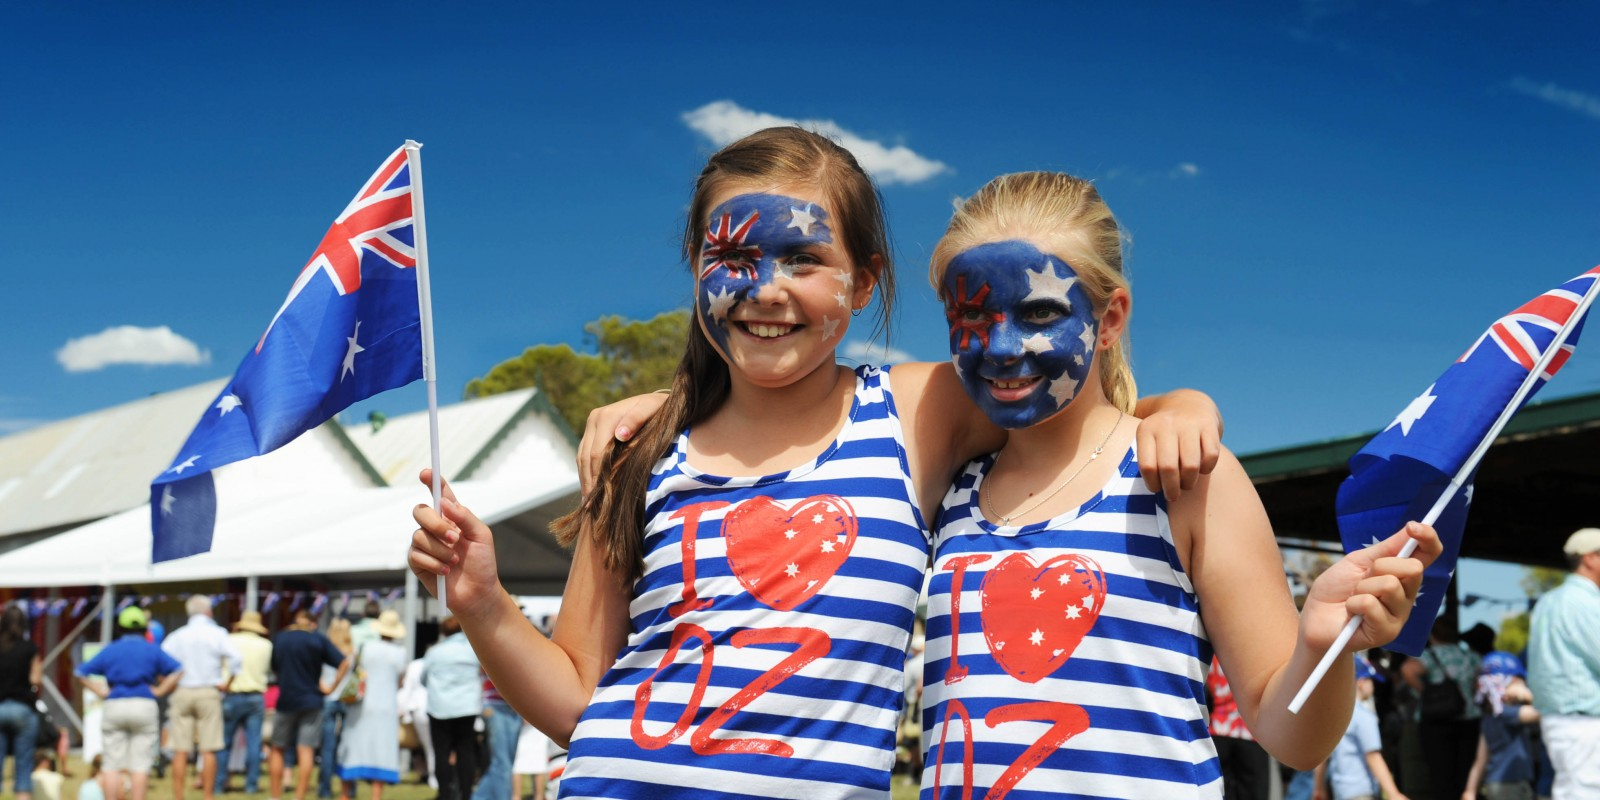 Amazing Australia Day Pictures & Backgrounds